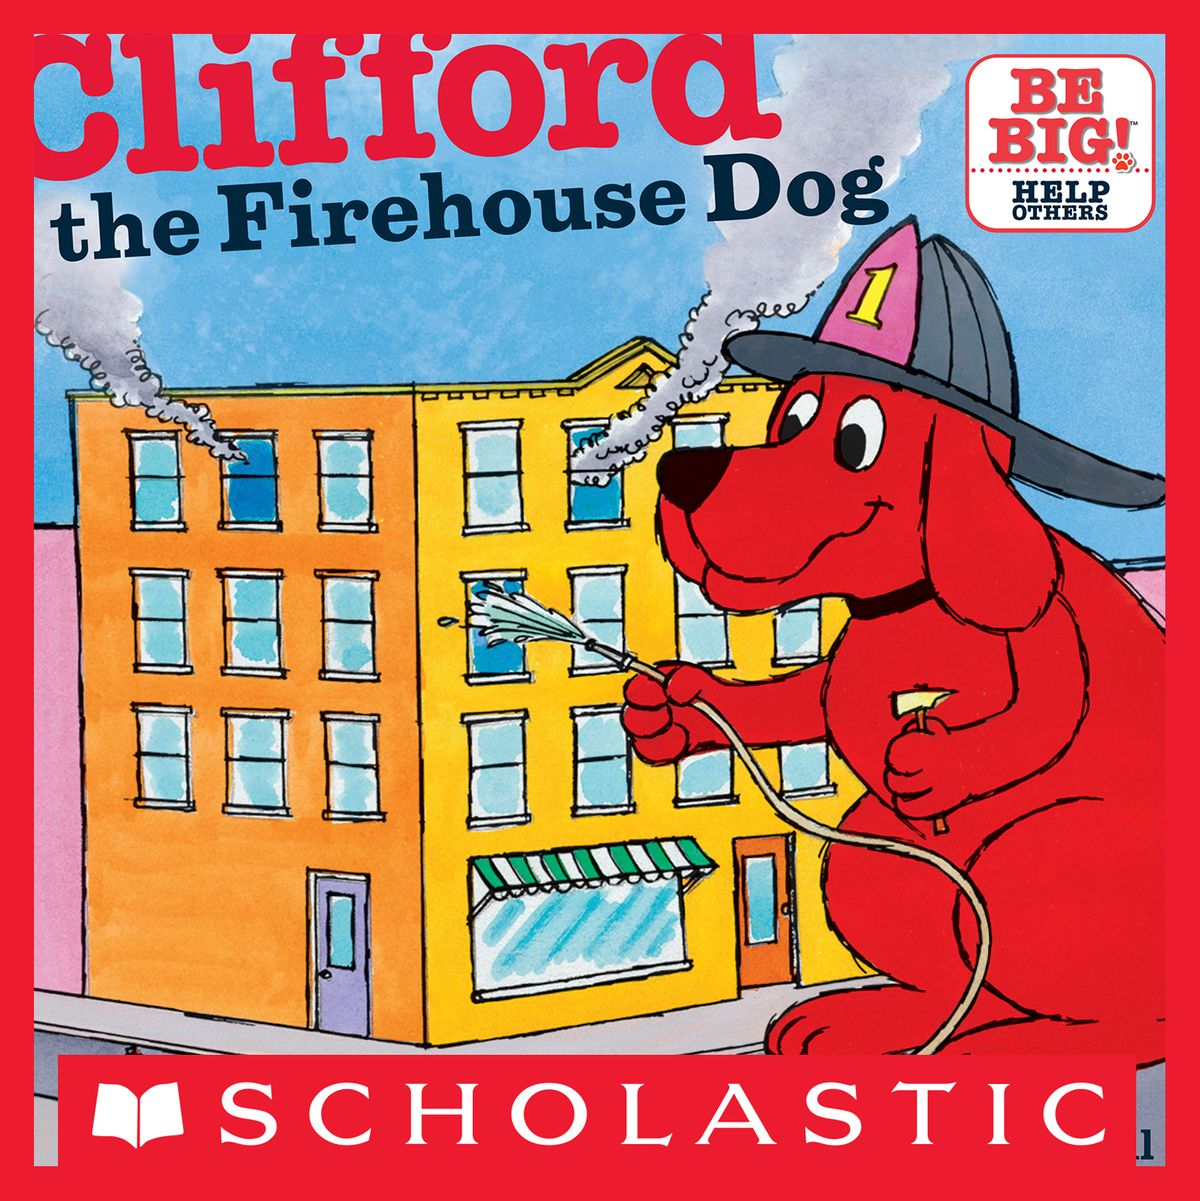 Remarkable Clifford The Firehouse Dog Paperback Machost Co Dining Chair Design Ideas Machostcouk